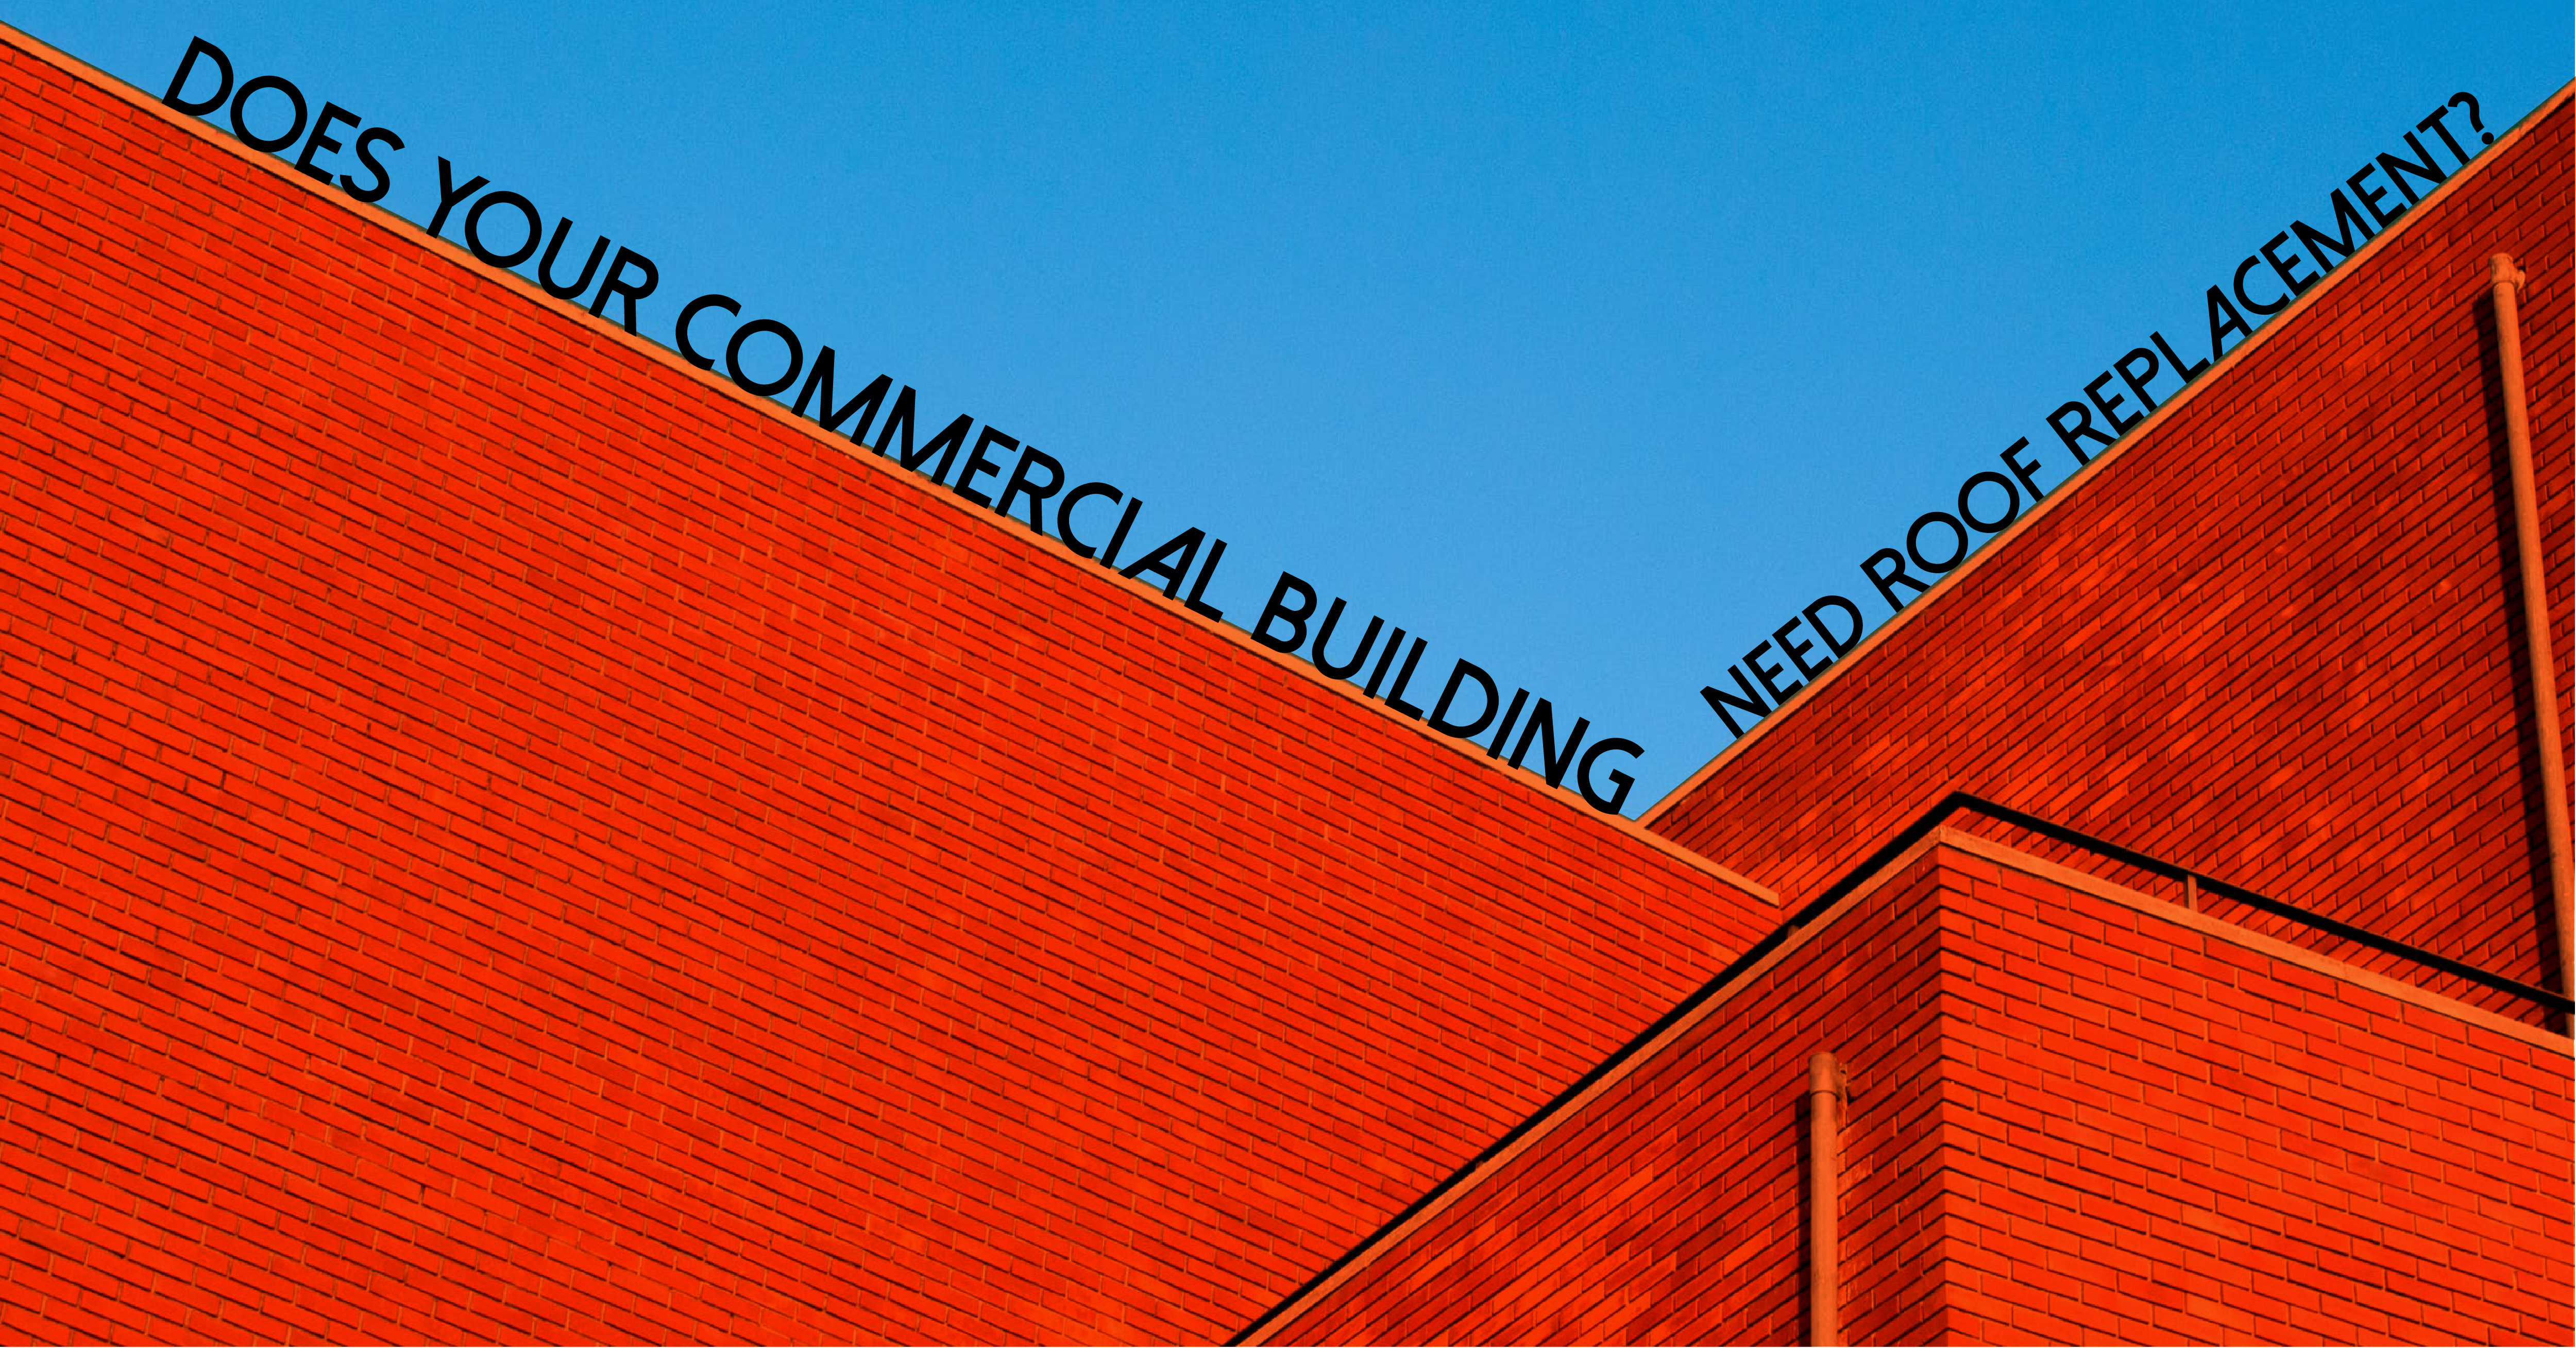 Does Your Commercial Building Need a Roof Replacement